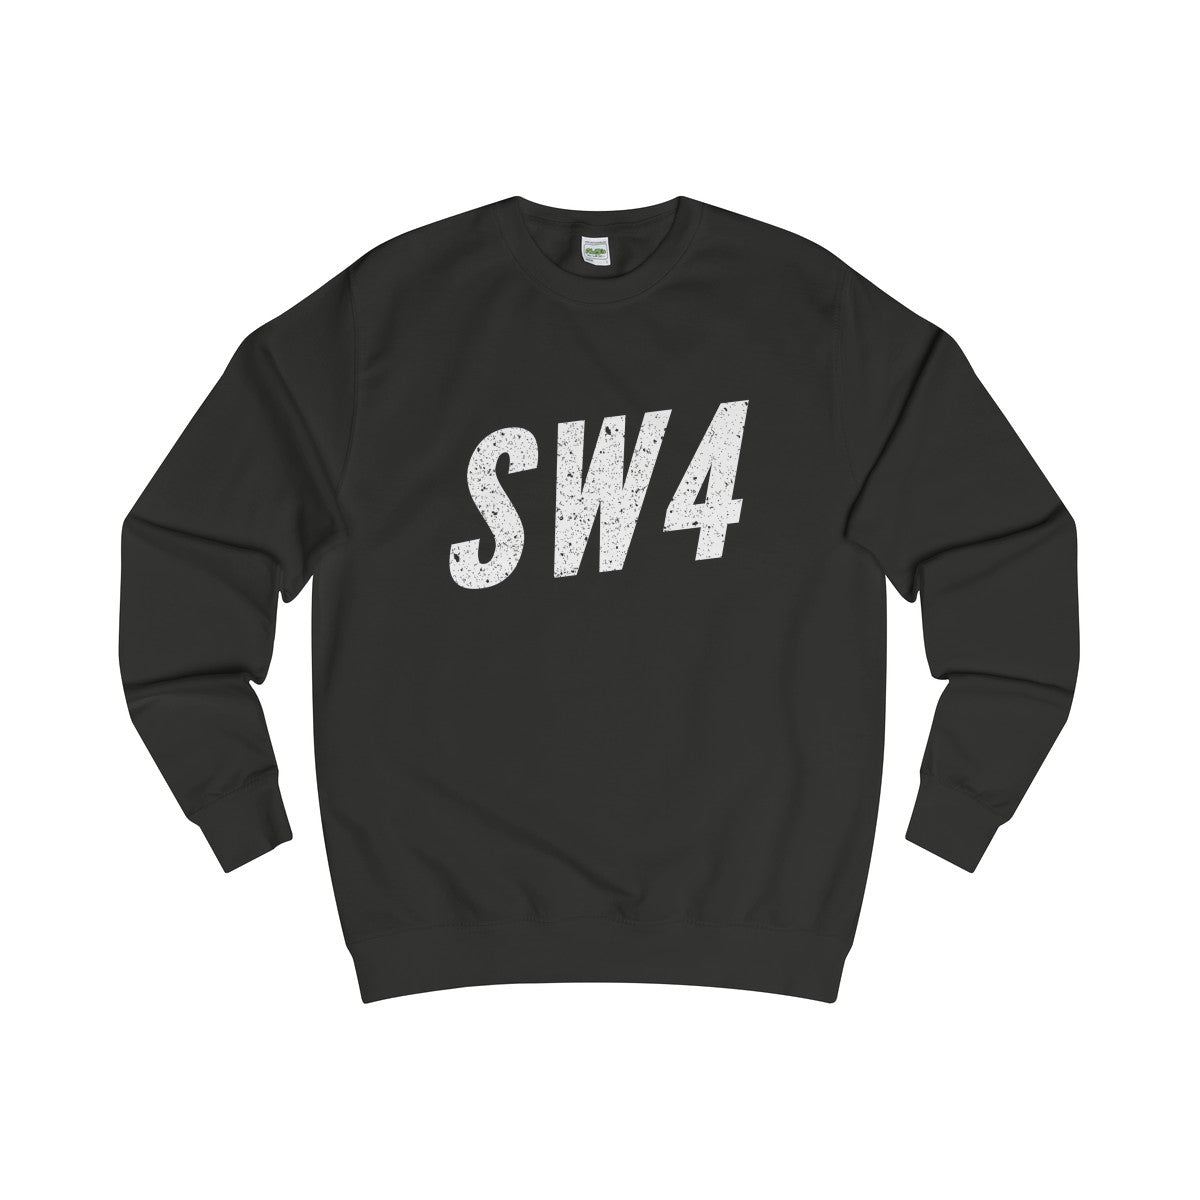 Clapham SW4 Sweater